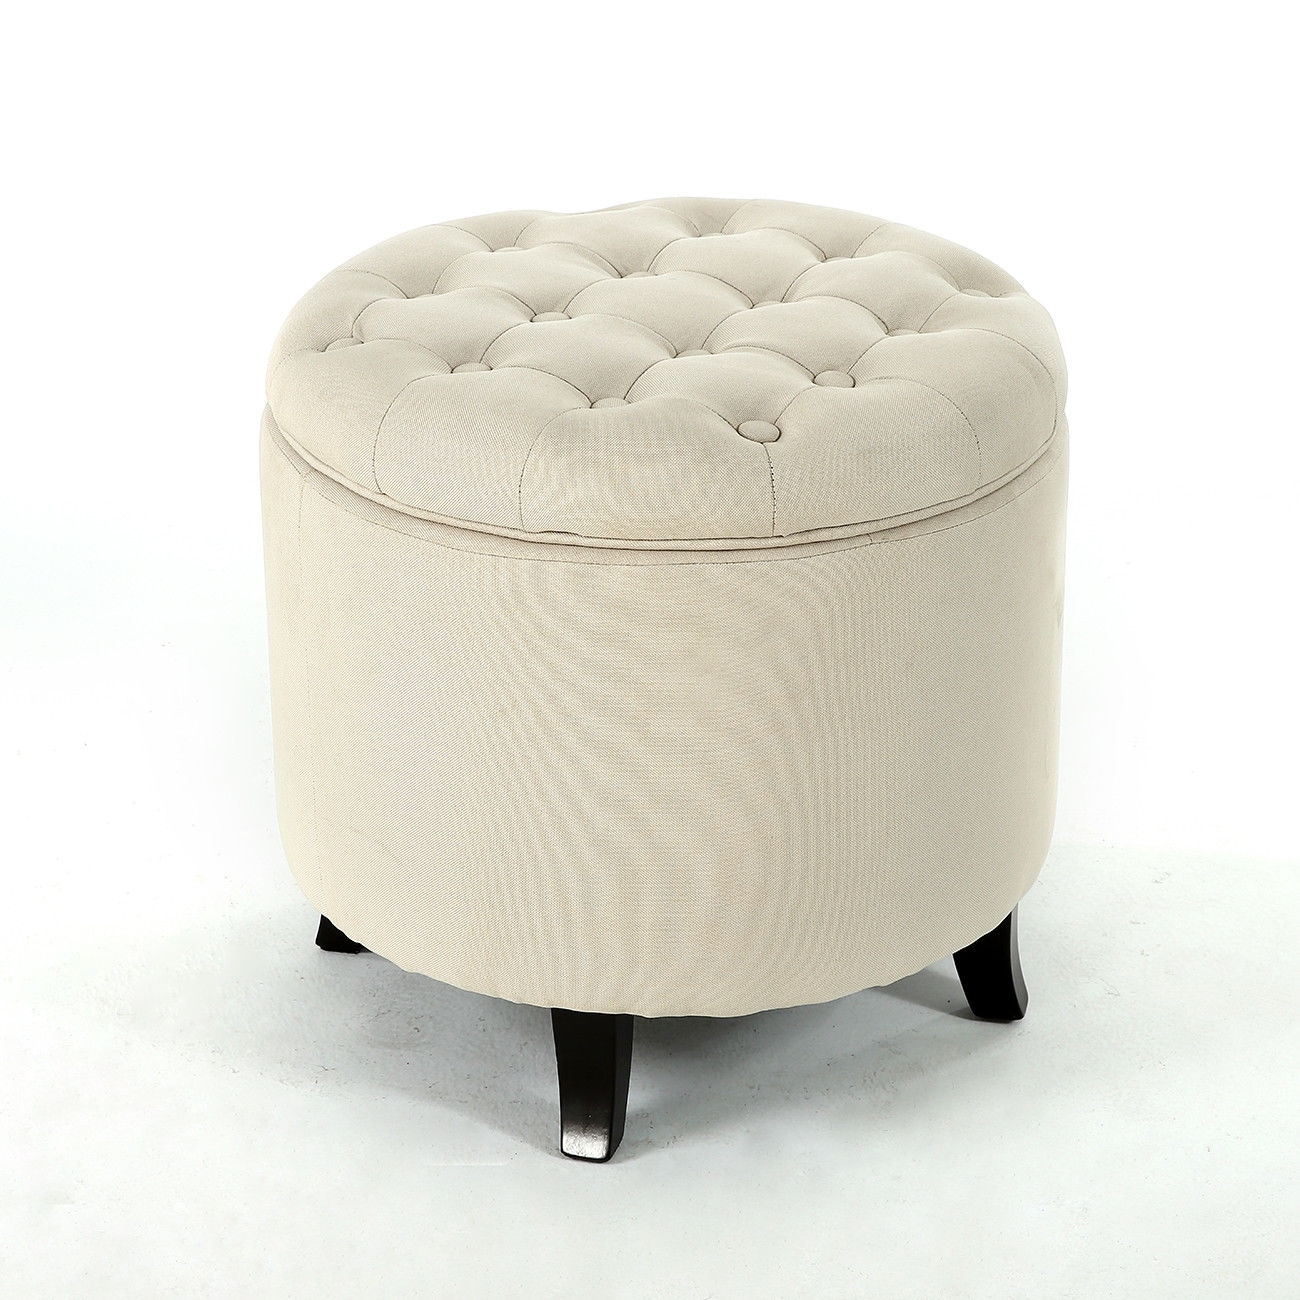 Elegant Fabric Tufted Button Ottoman Round Footstool Coffee Table with regard to Round Button Tufted Coffee Tables (Image 10 of 30)